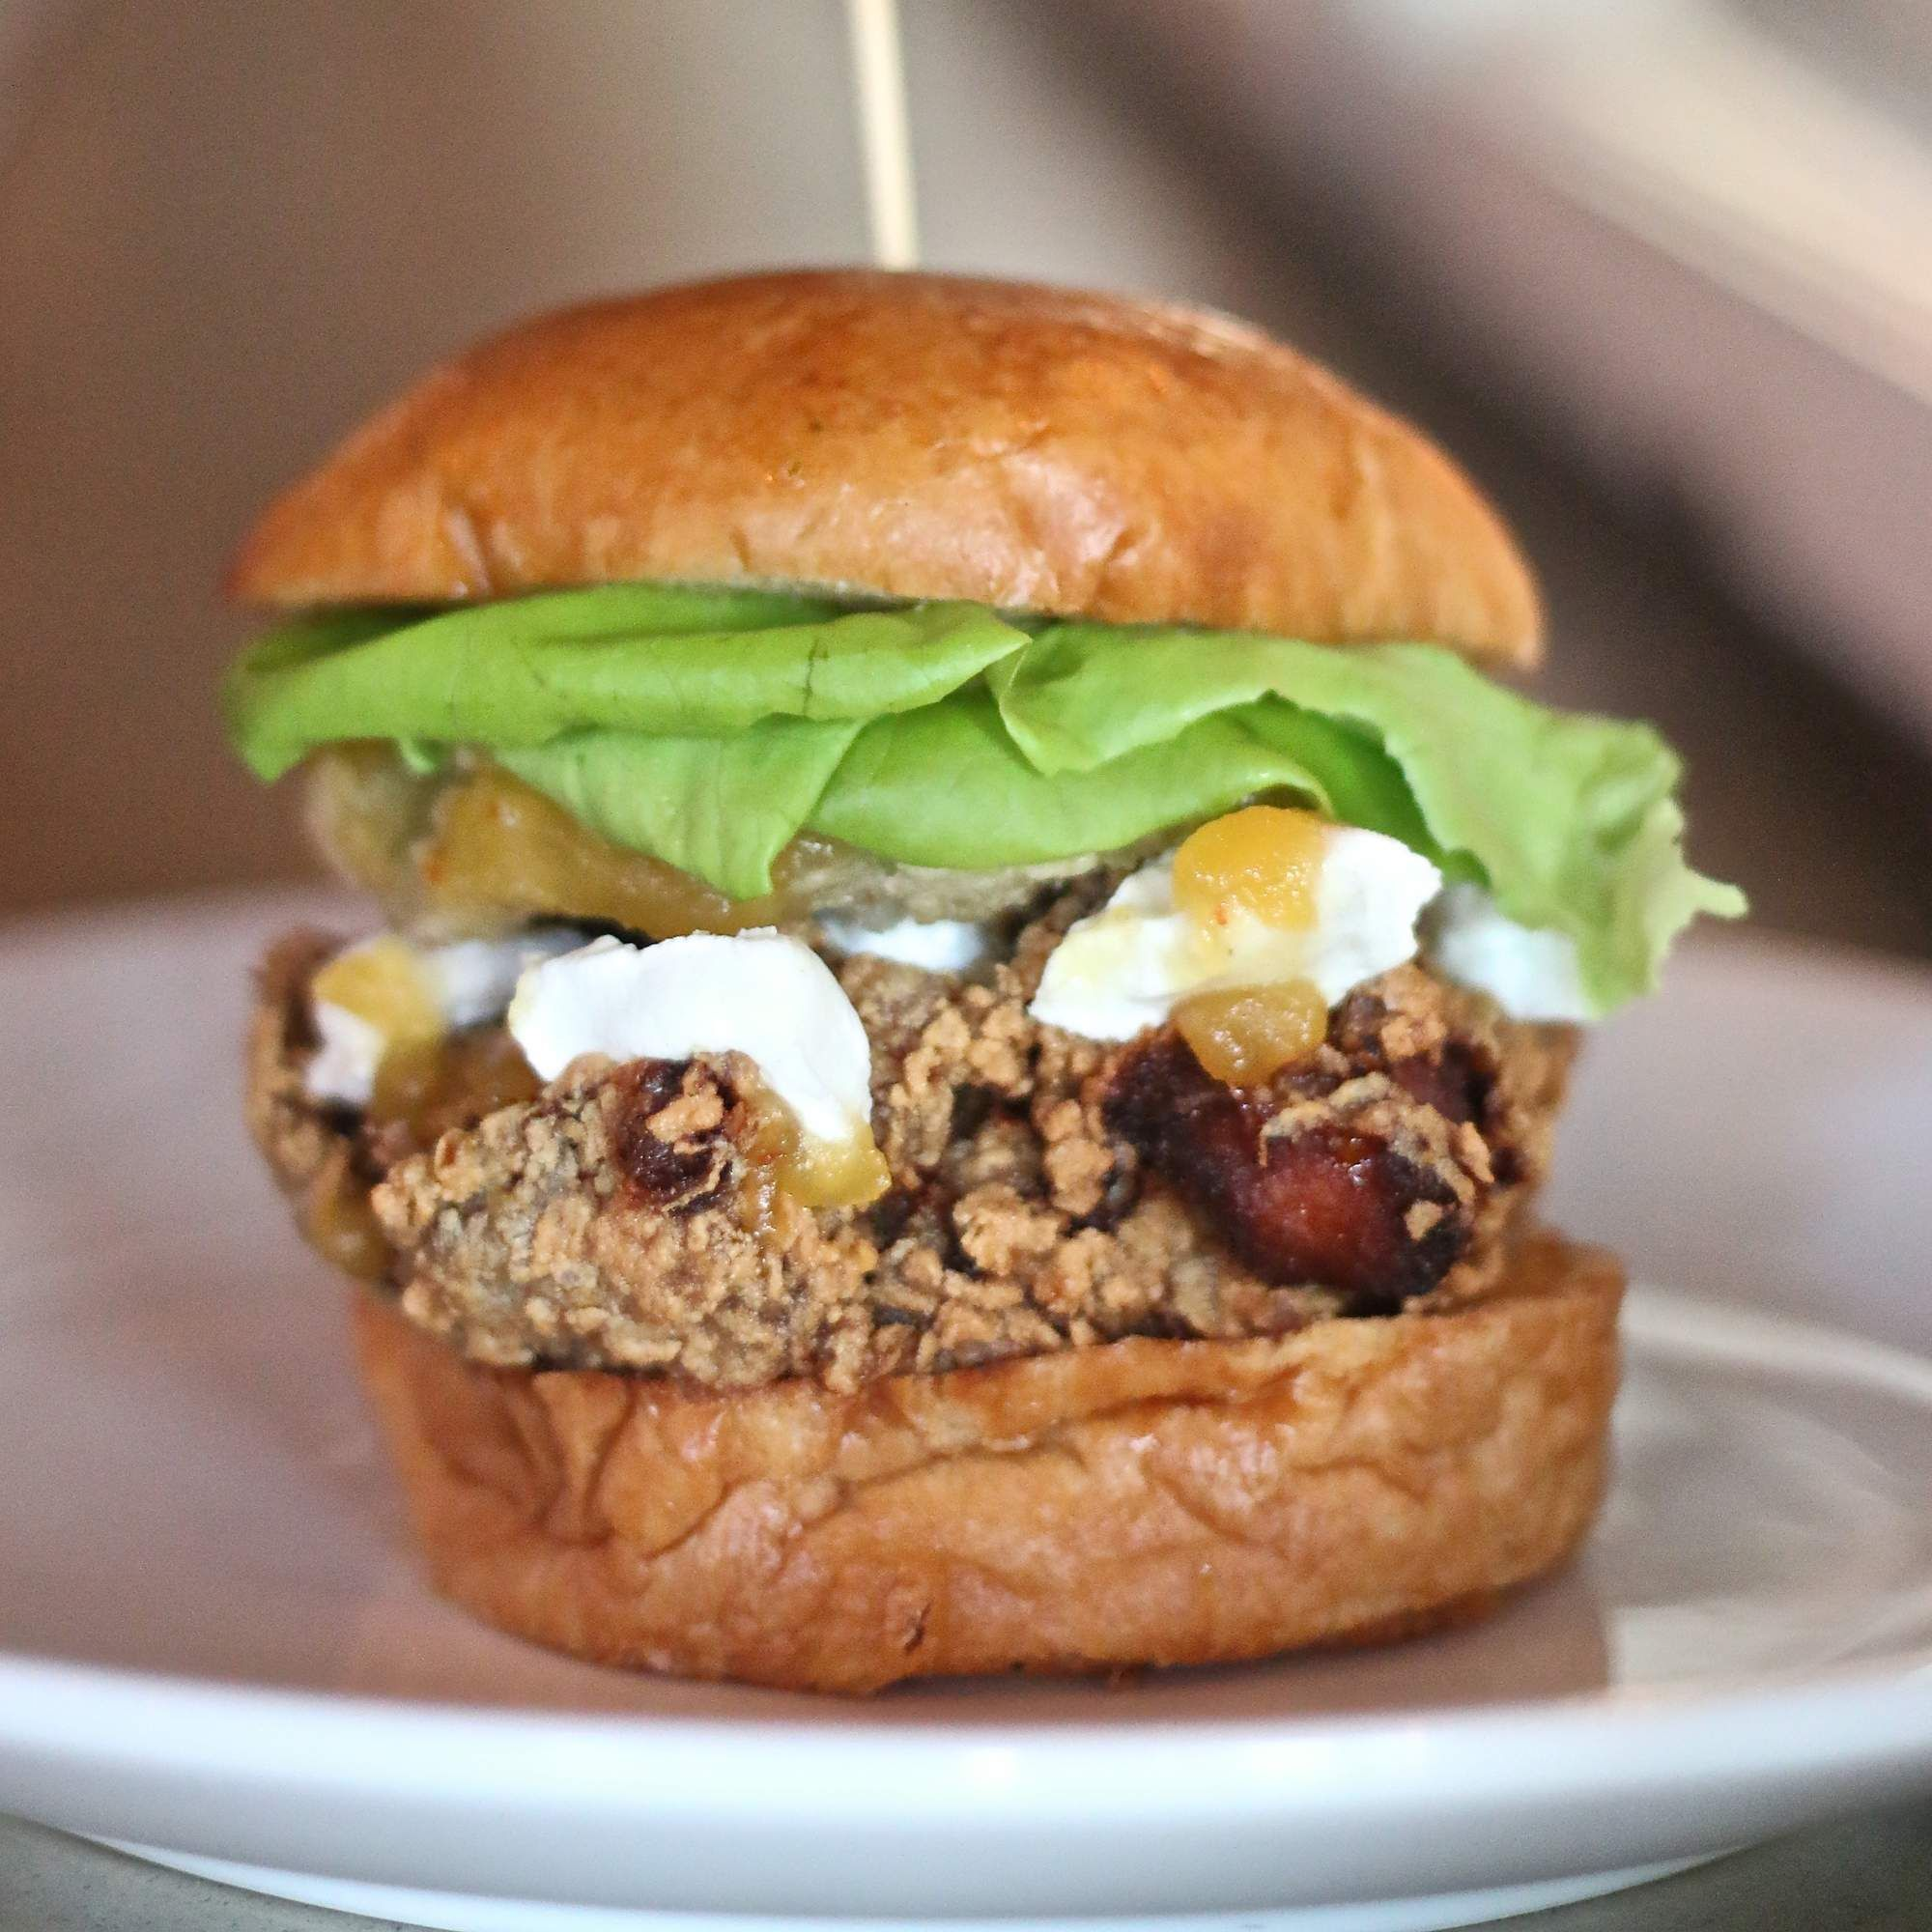 The 5 best new fried foods to eat in Atlanta this weekend